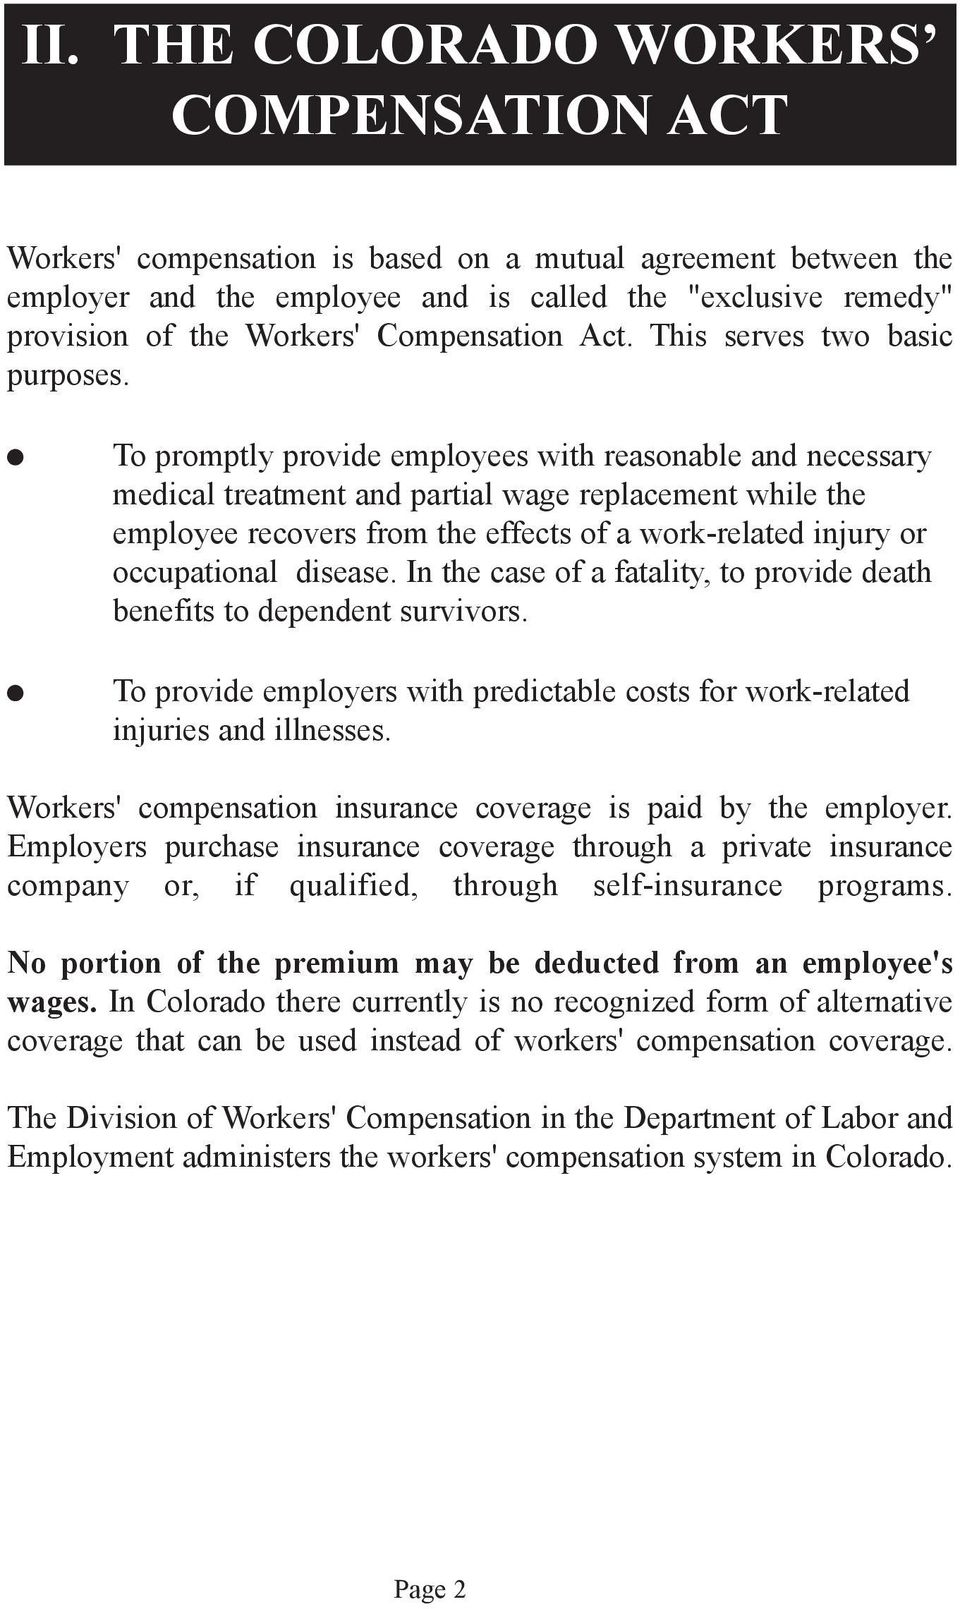 To promptly provide employees with reasonable and necessary medical treatment and partial wage replacement while the employee recovers from the effects of a work-related injury or occupational